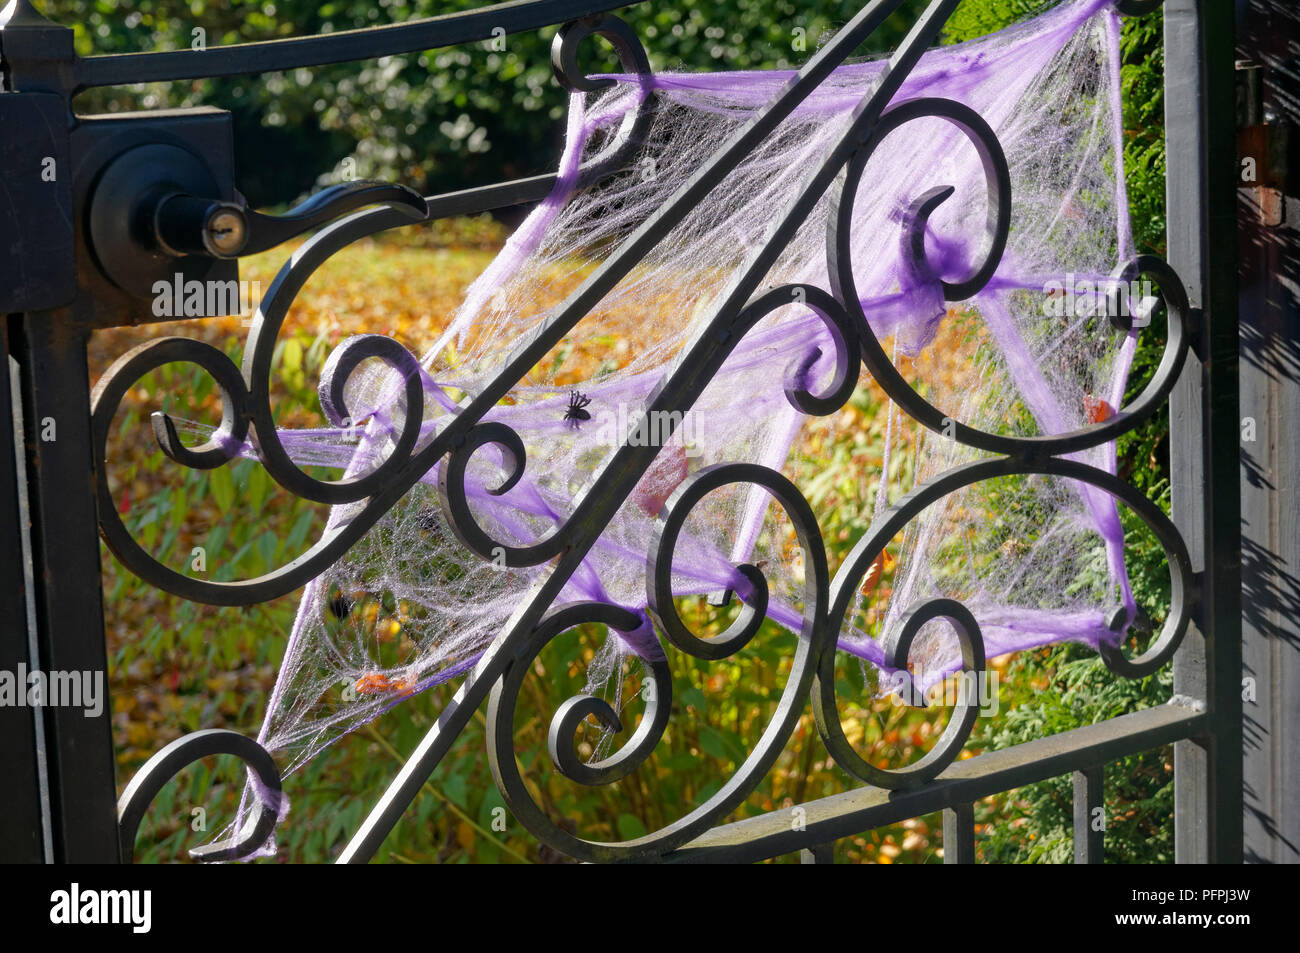 Purple Halloween spider webs decorating the metal gate of a house - Stock Image